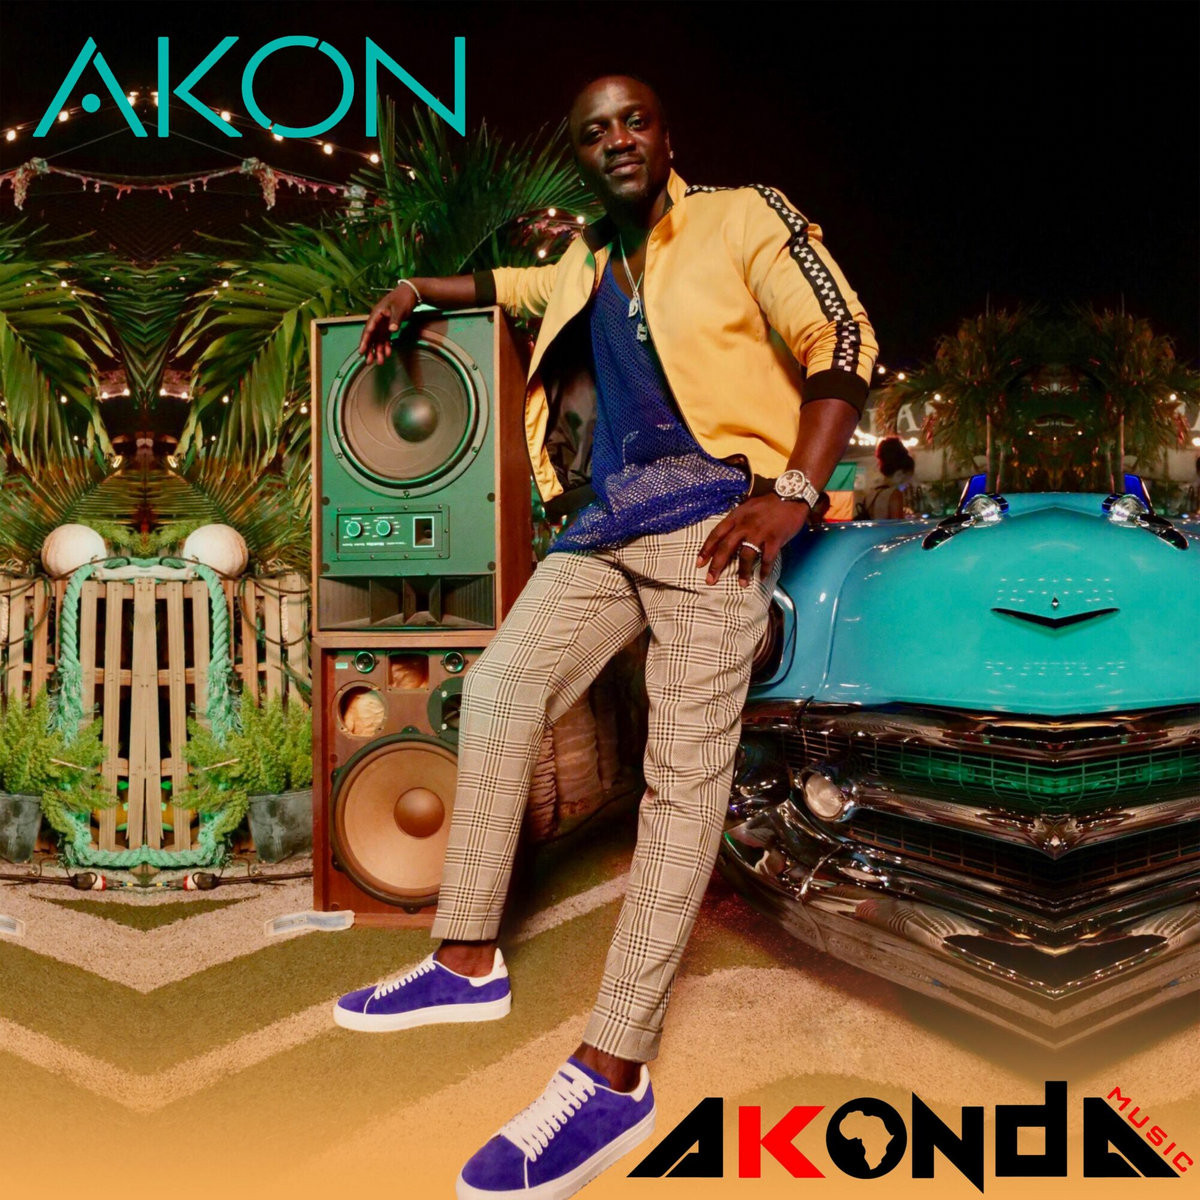 Akon all mp3 songs zip file free download